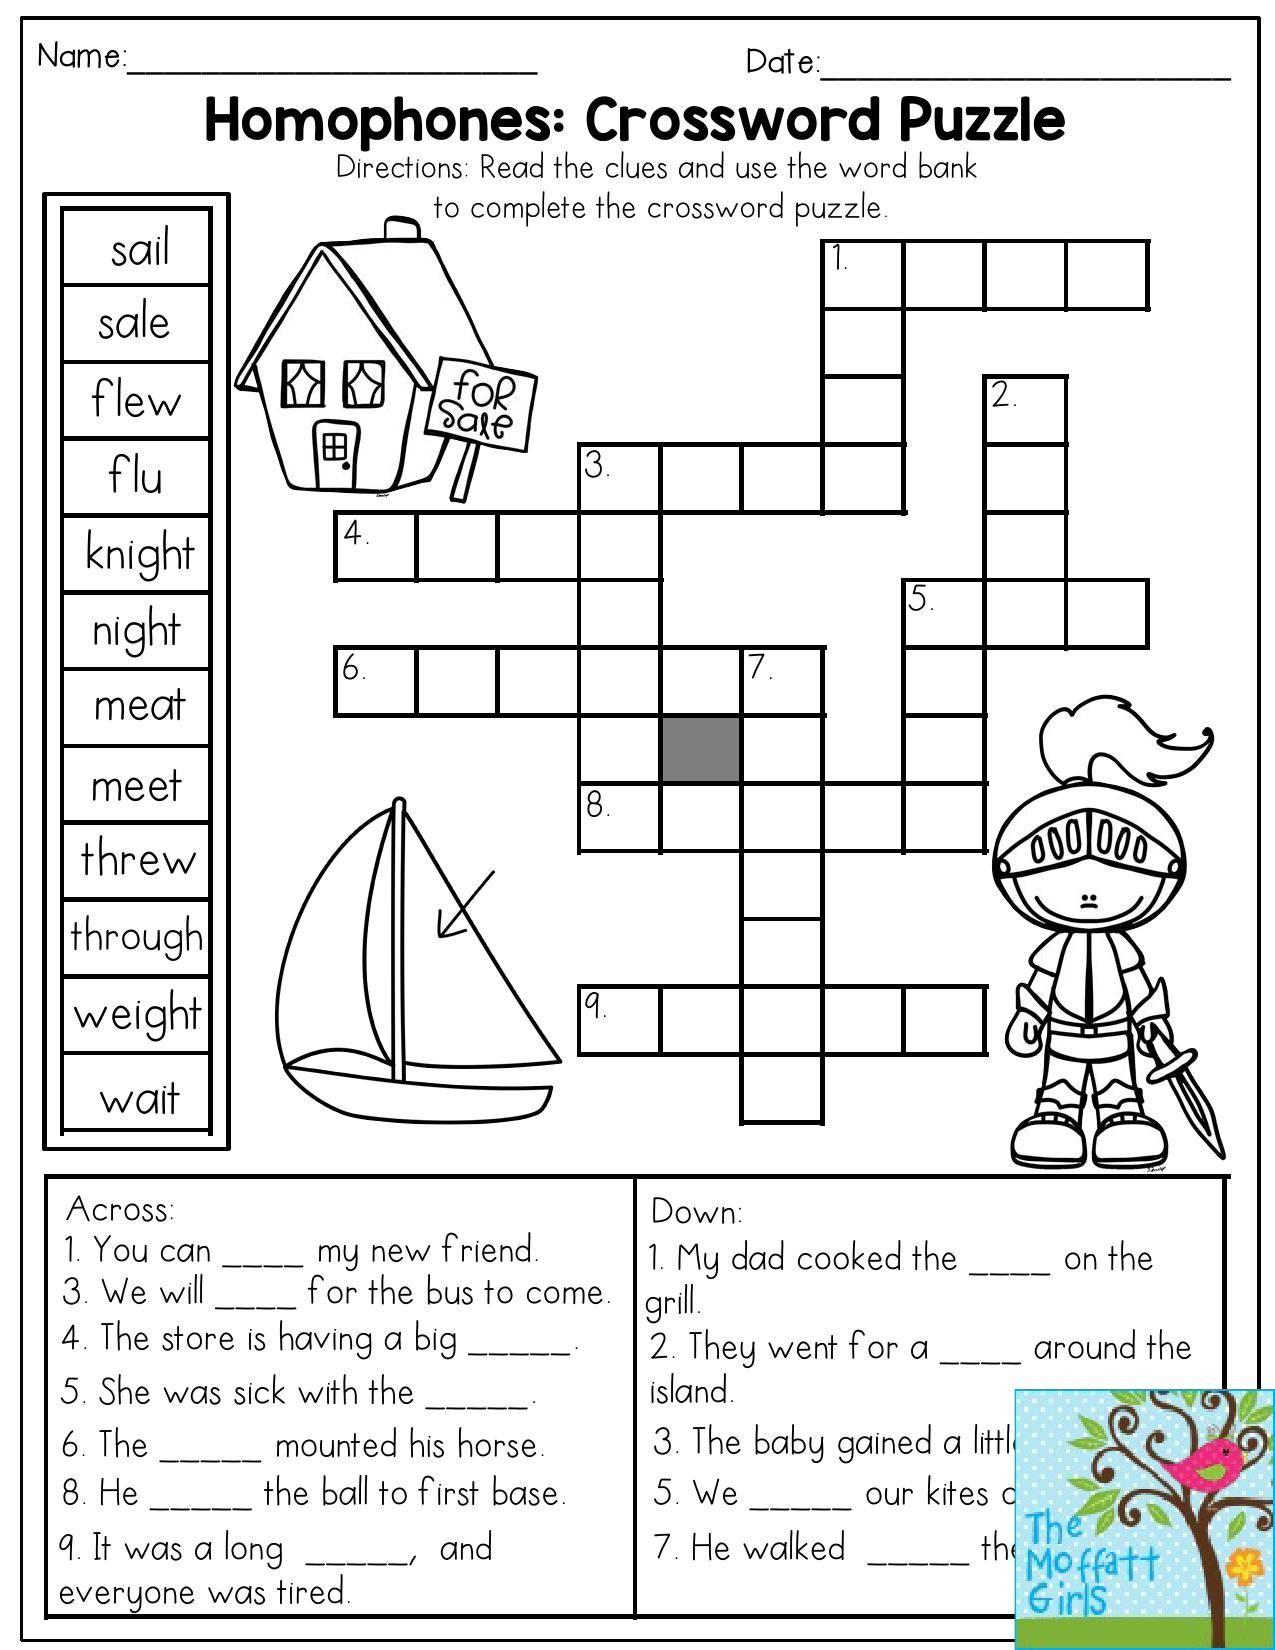 Homophones: Crossword Puzzle- Read The Clues And Use The Word Bank - Printable Crossword Puzzles For 3Rd Graders